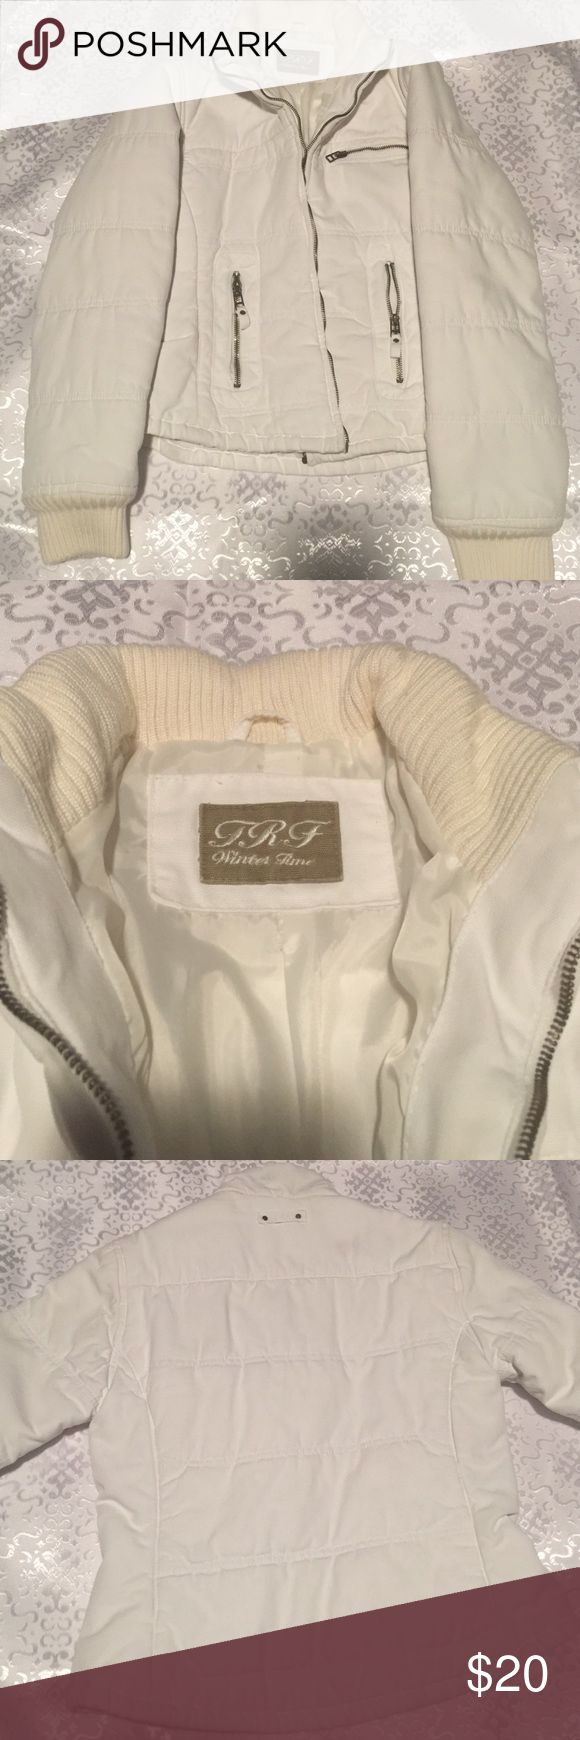 Zara winter Jacket White winter jacket by Zara. US size M. No stains. Zara Jackets & Coats